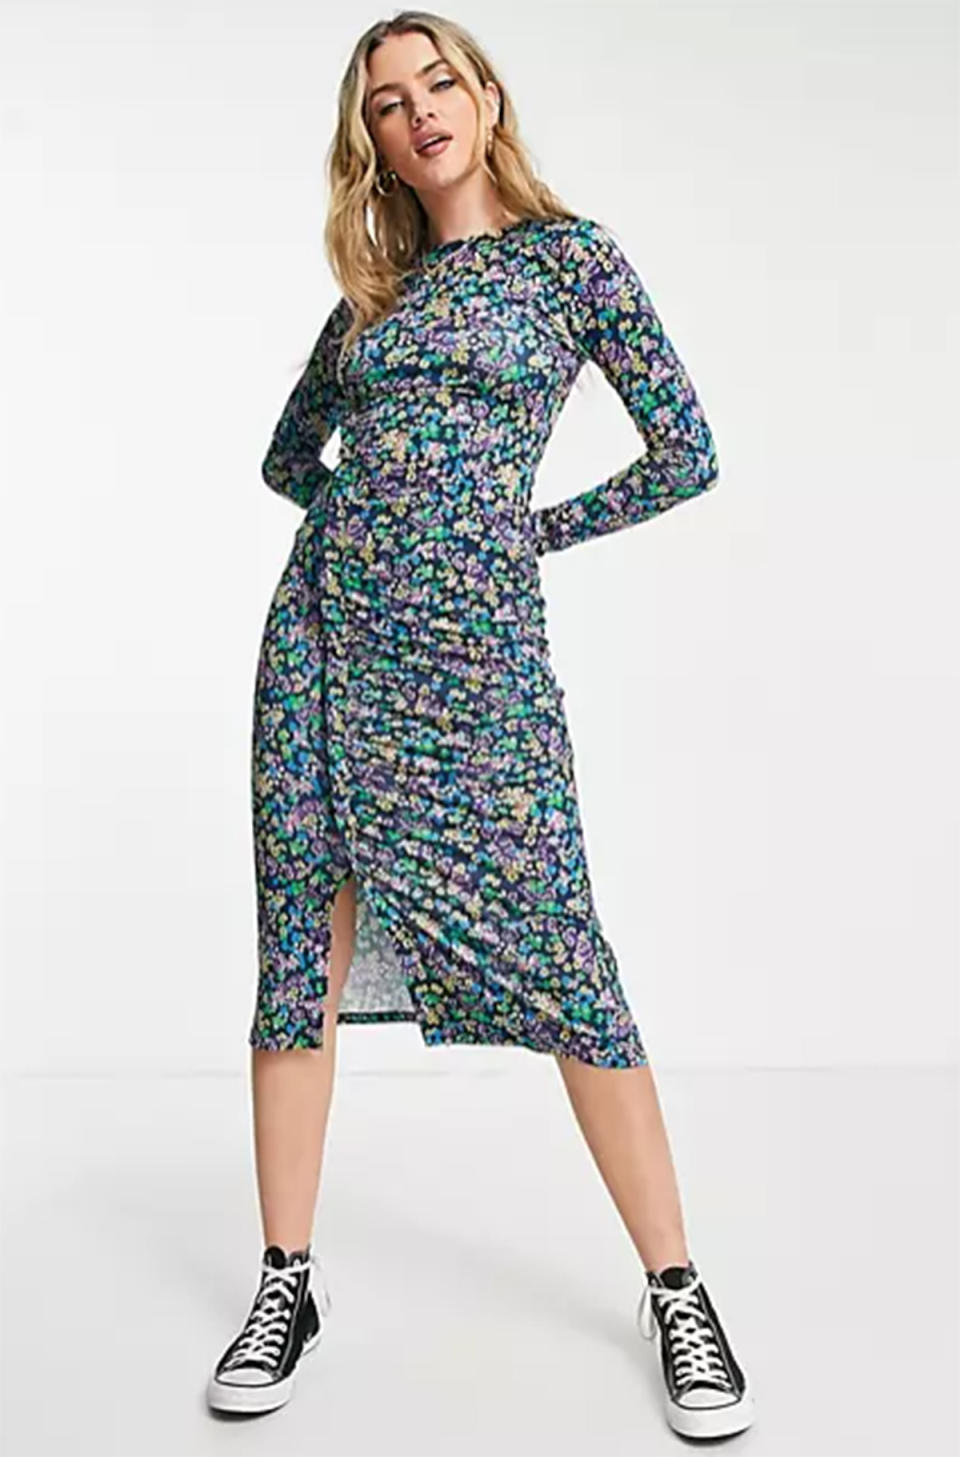 ASOS DESIGN midi dress with frill ruched detail in blue ditsy floral, $56. Photo: ASOS.